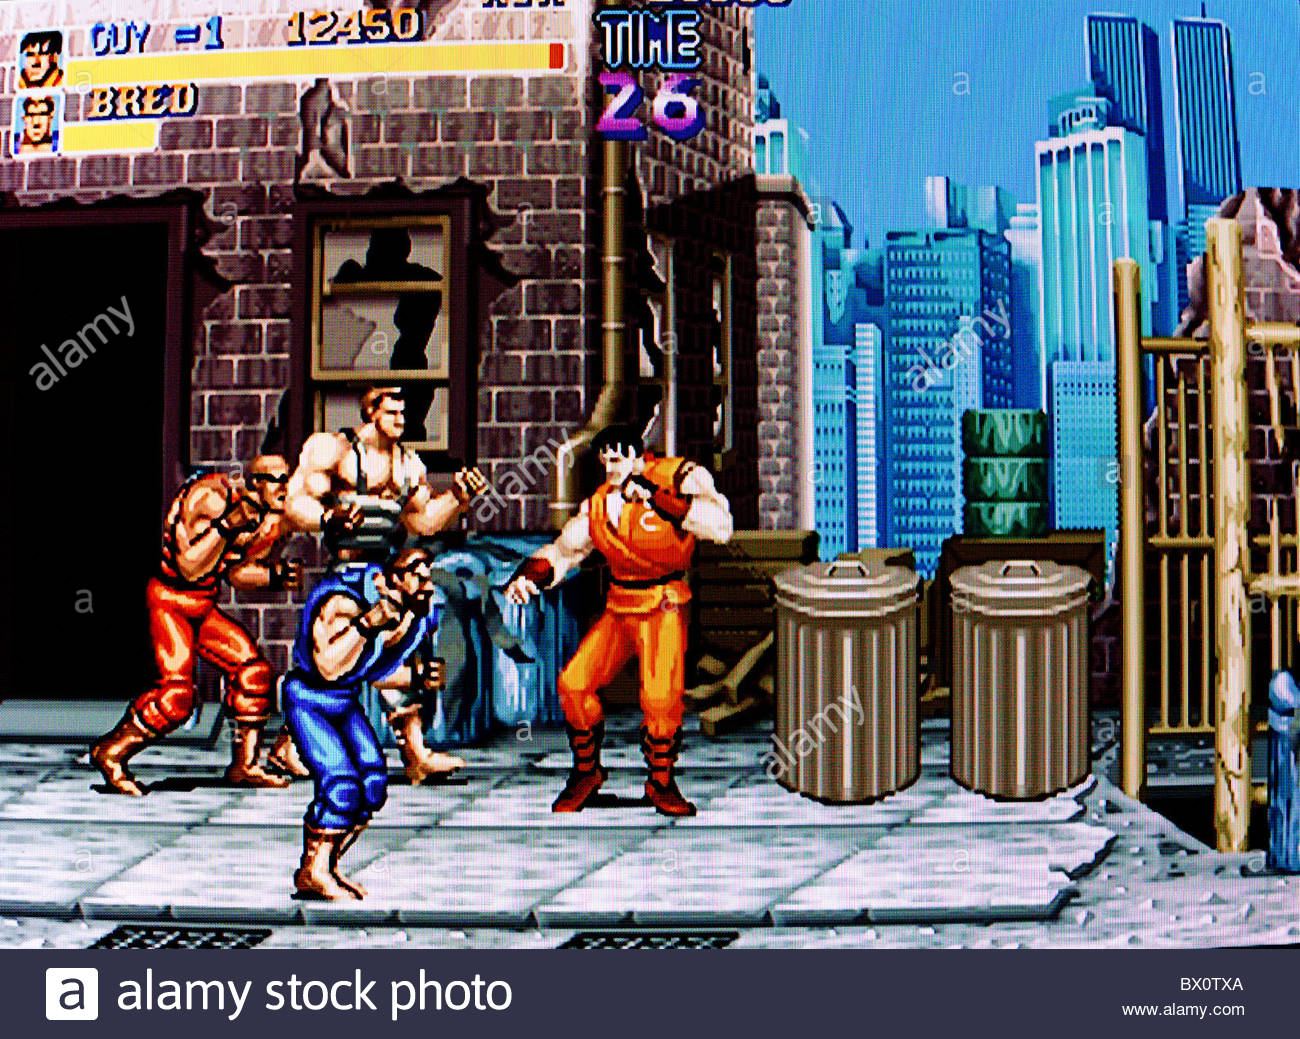 Final fight classic game screen shot - Stock Image